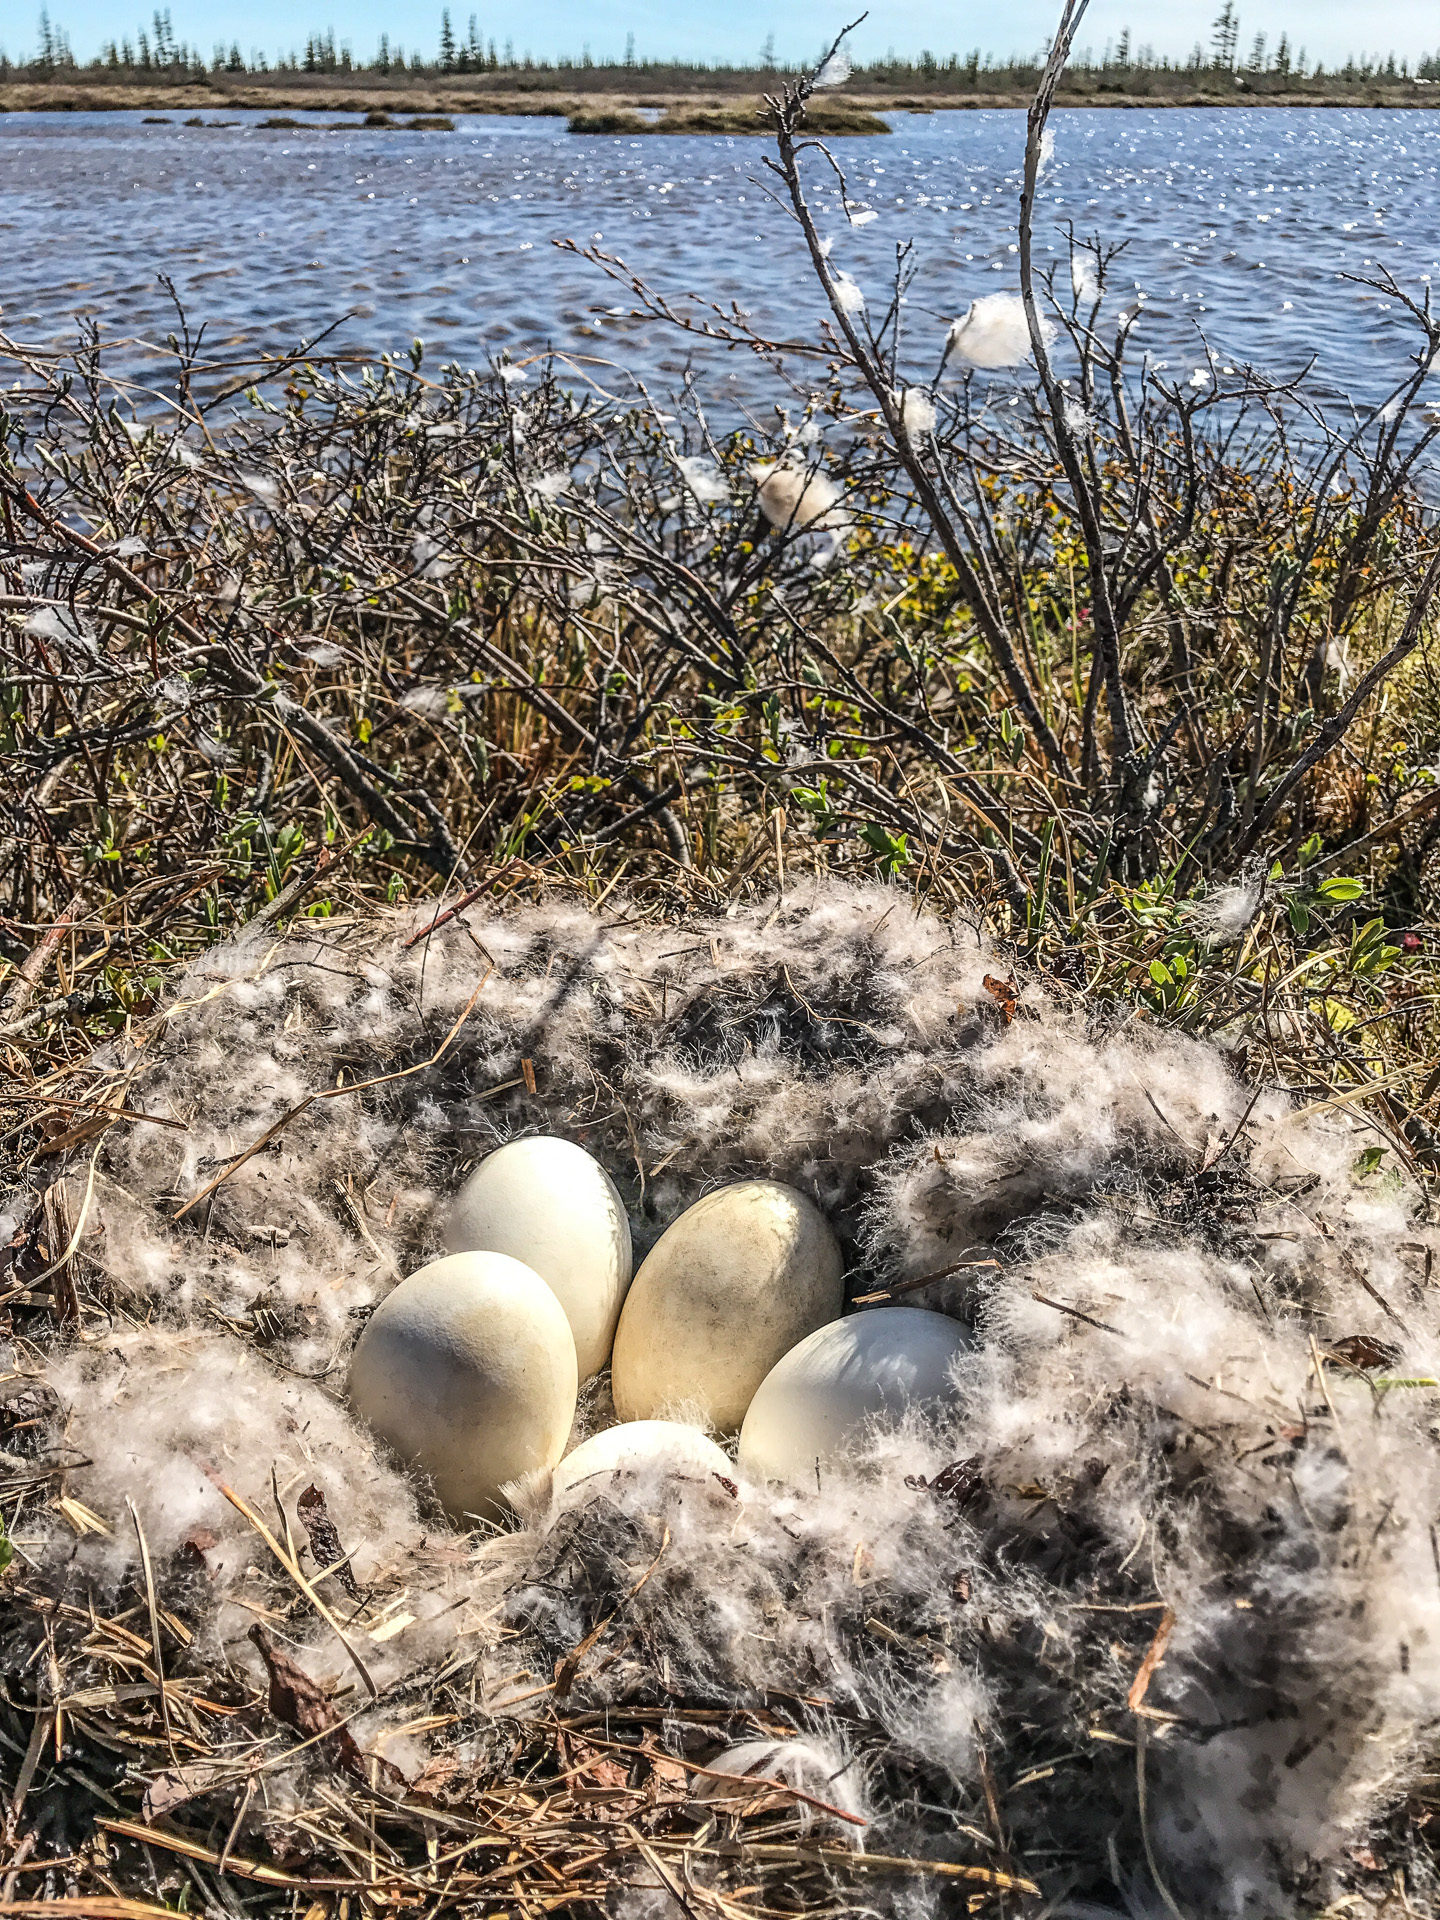 Canada Goose nest with eggs Launch Road Churchill Manitoba Canada